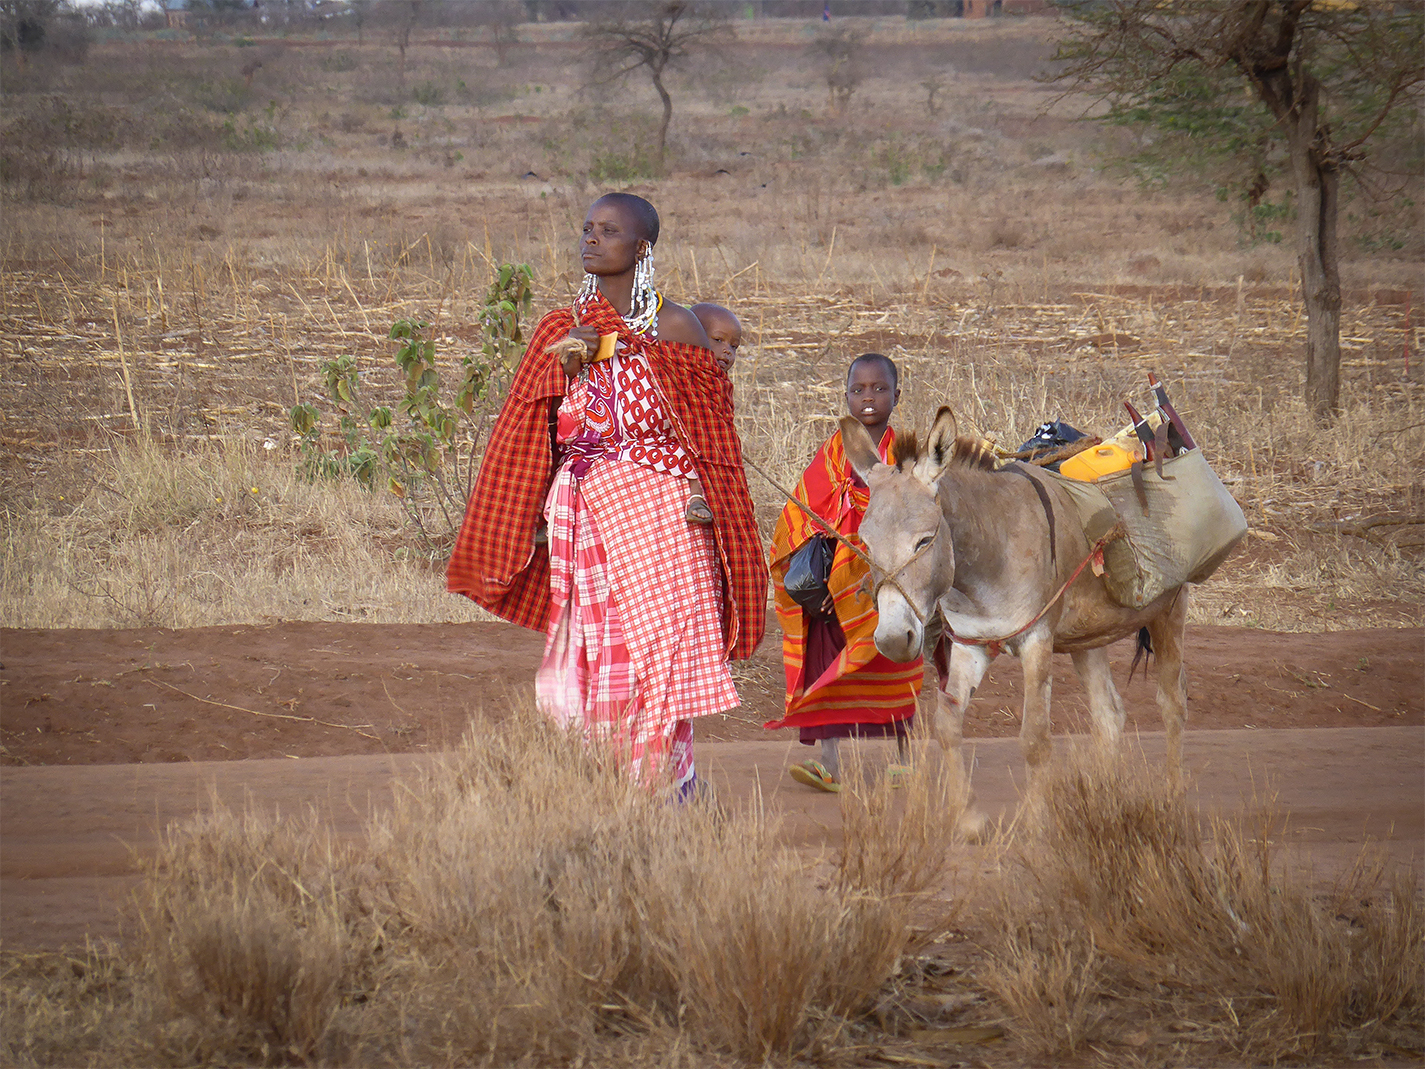 Masaai woman accompanied by her donkey